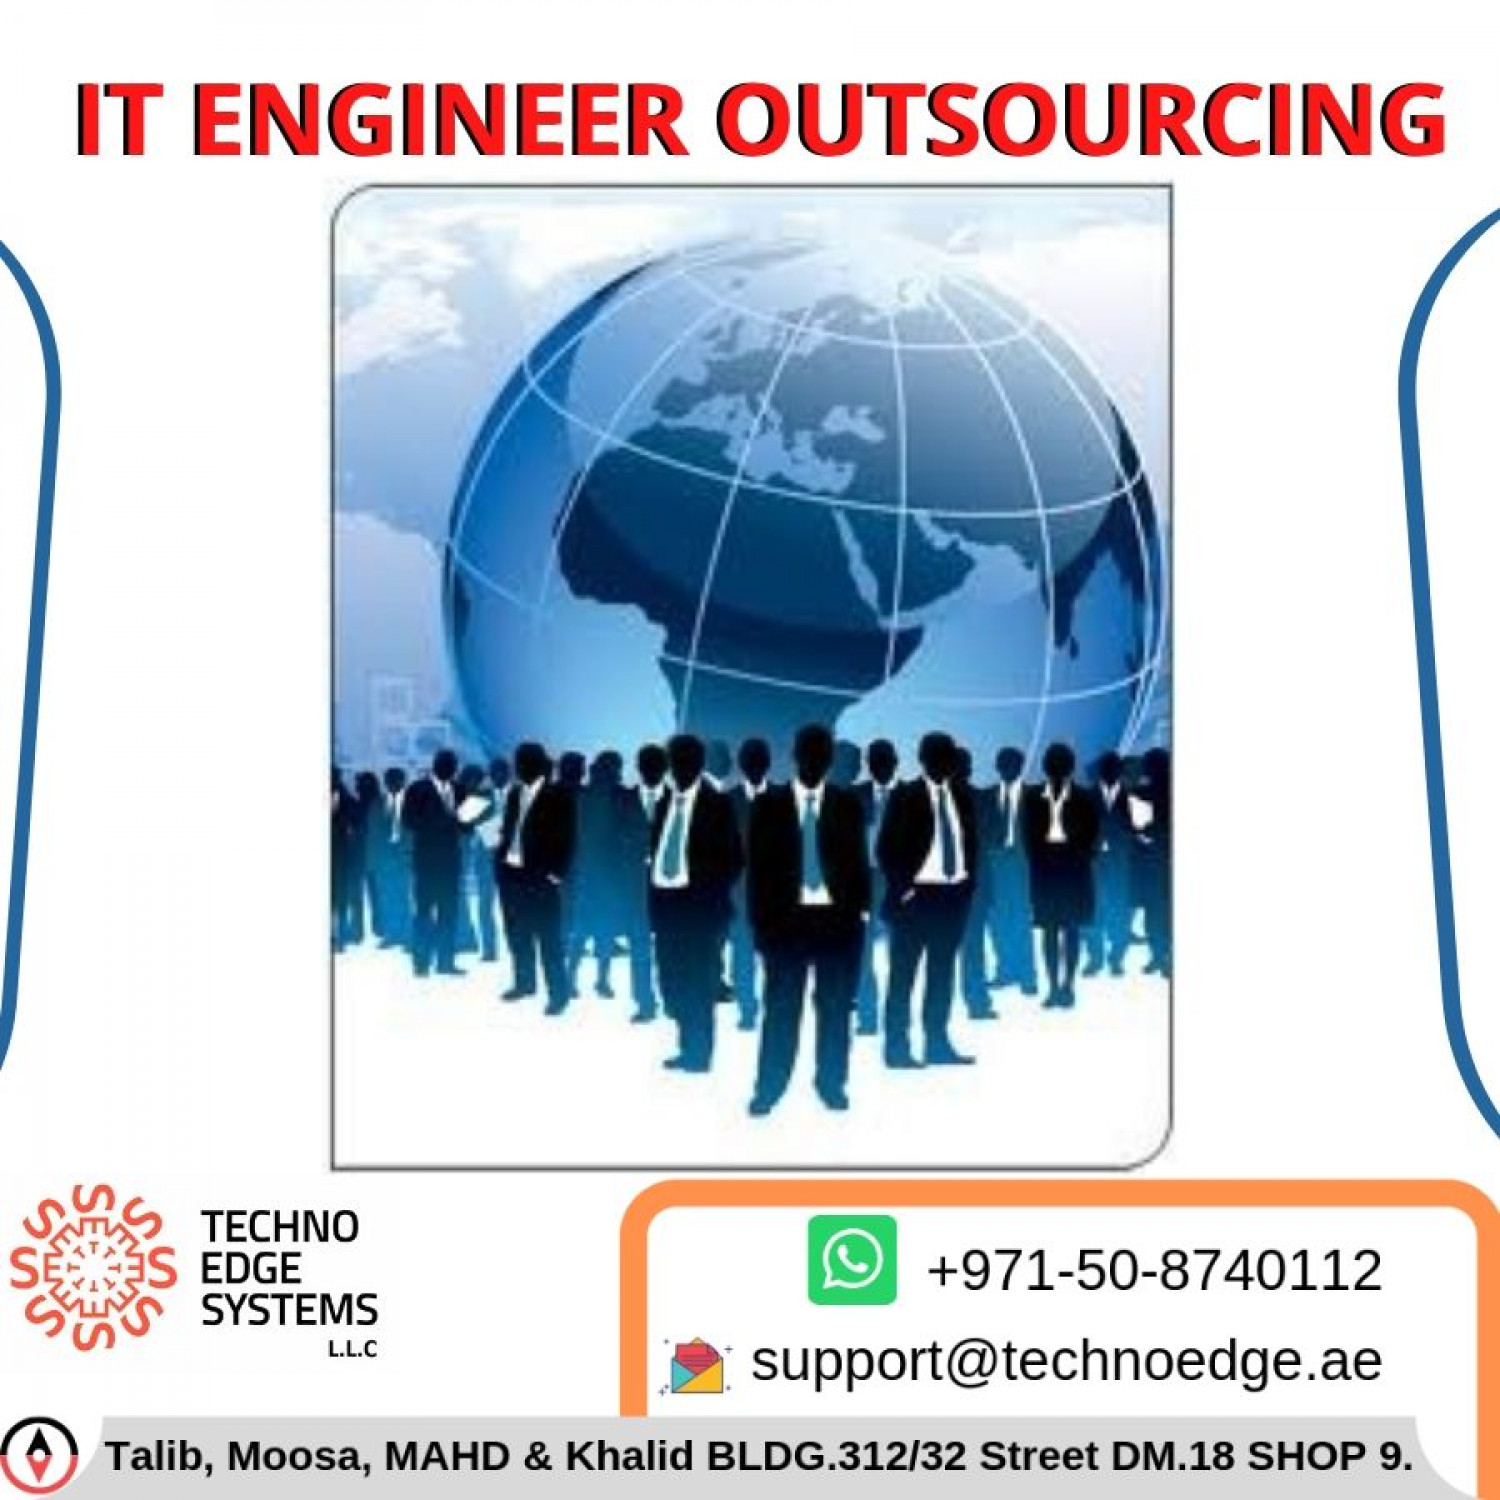 IT Engineer Outsource in Dubai at ITAMCSupport Infographic